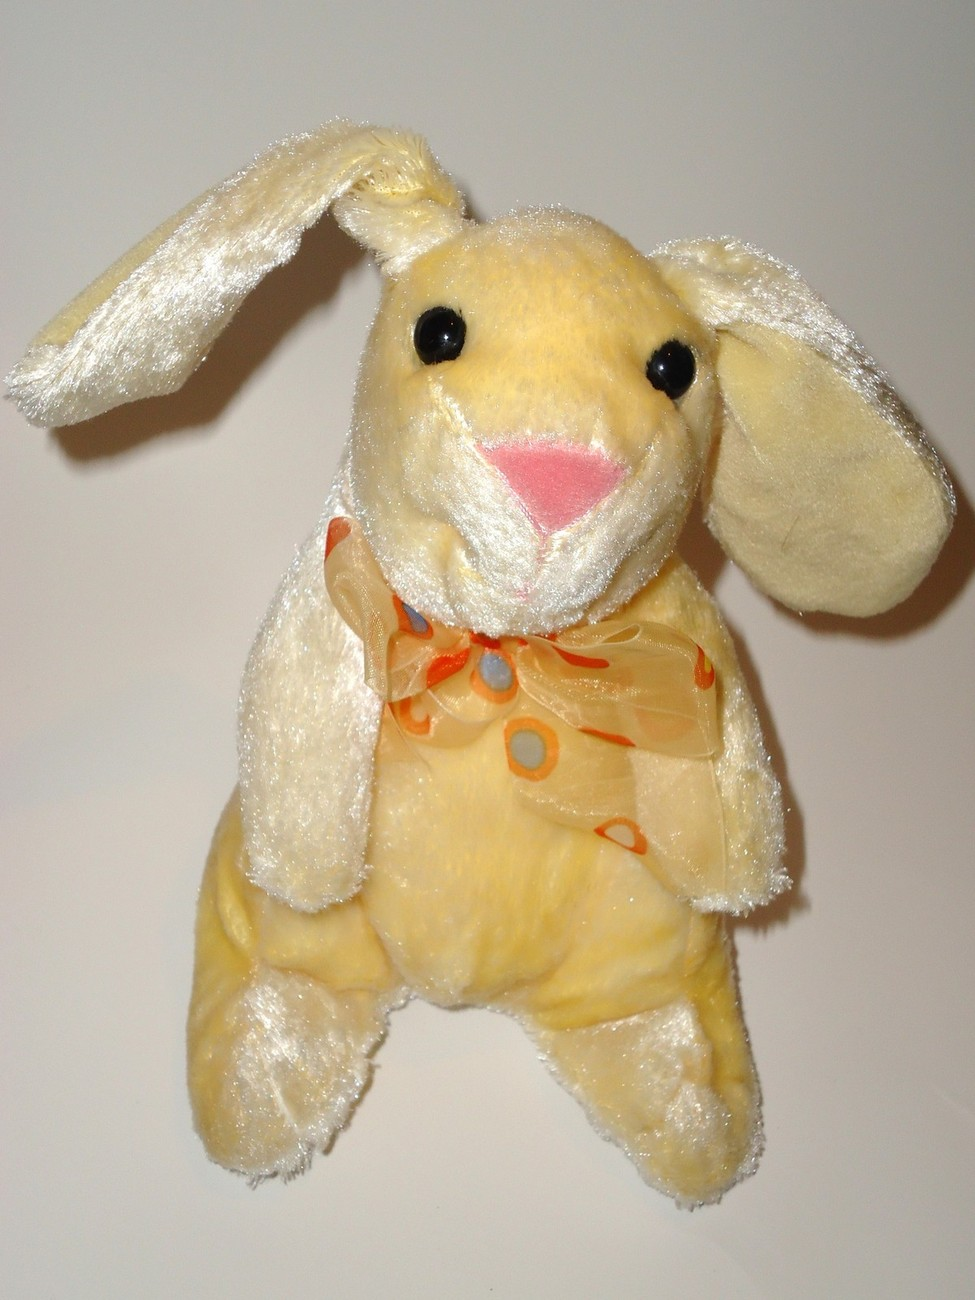 Walmart Easter Bunny Plush Stuffed Animal Yellow Orange Polka Dot Bow